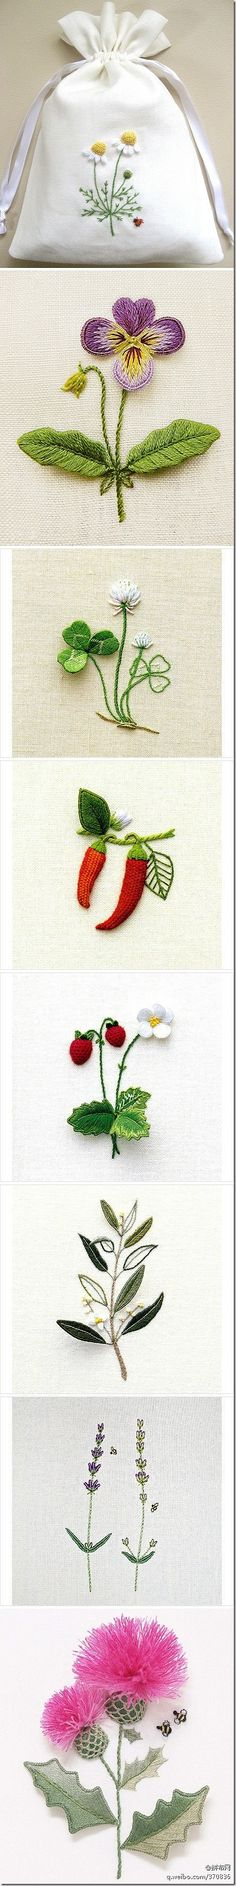 Lovely stumpwork. #embroidery #stumpwork diy embroidery inspiration - little plants and flowers